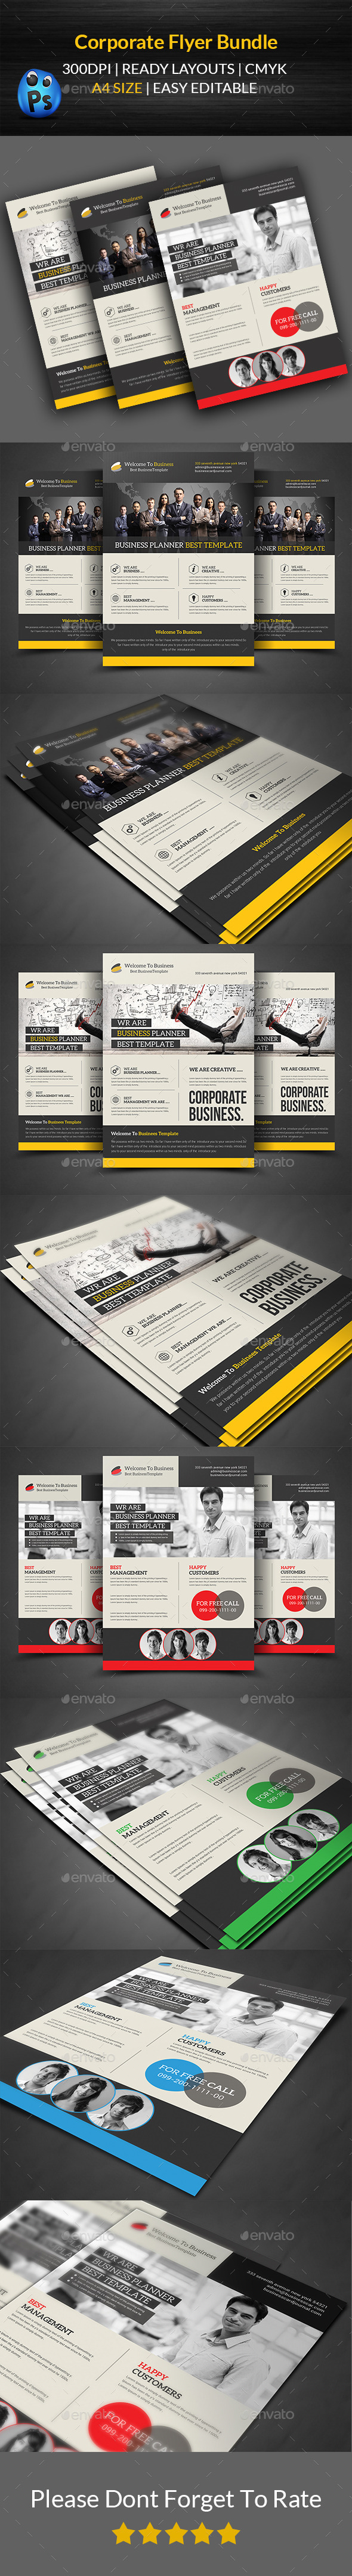 GraphicRiver Corporate Flyer Bundle Templates 11766525